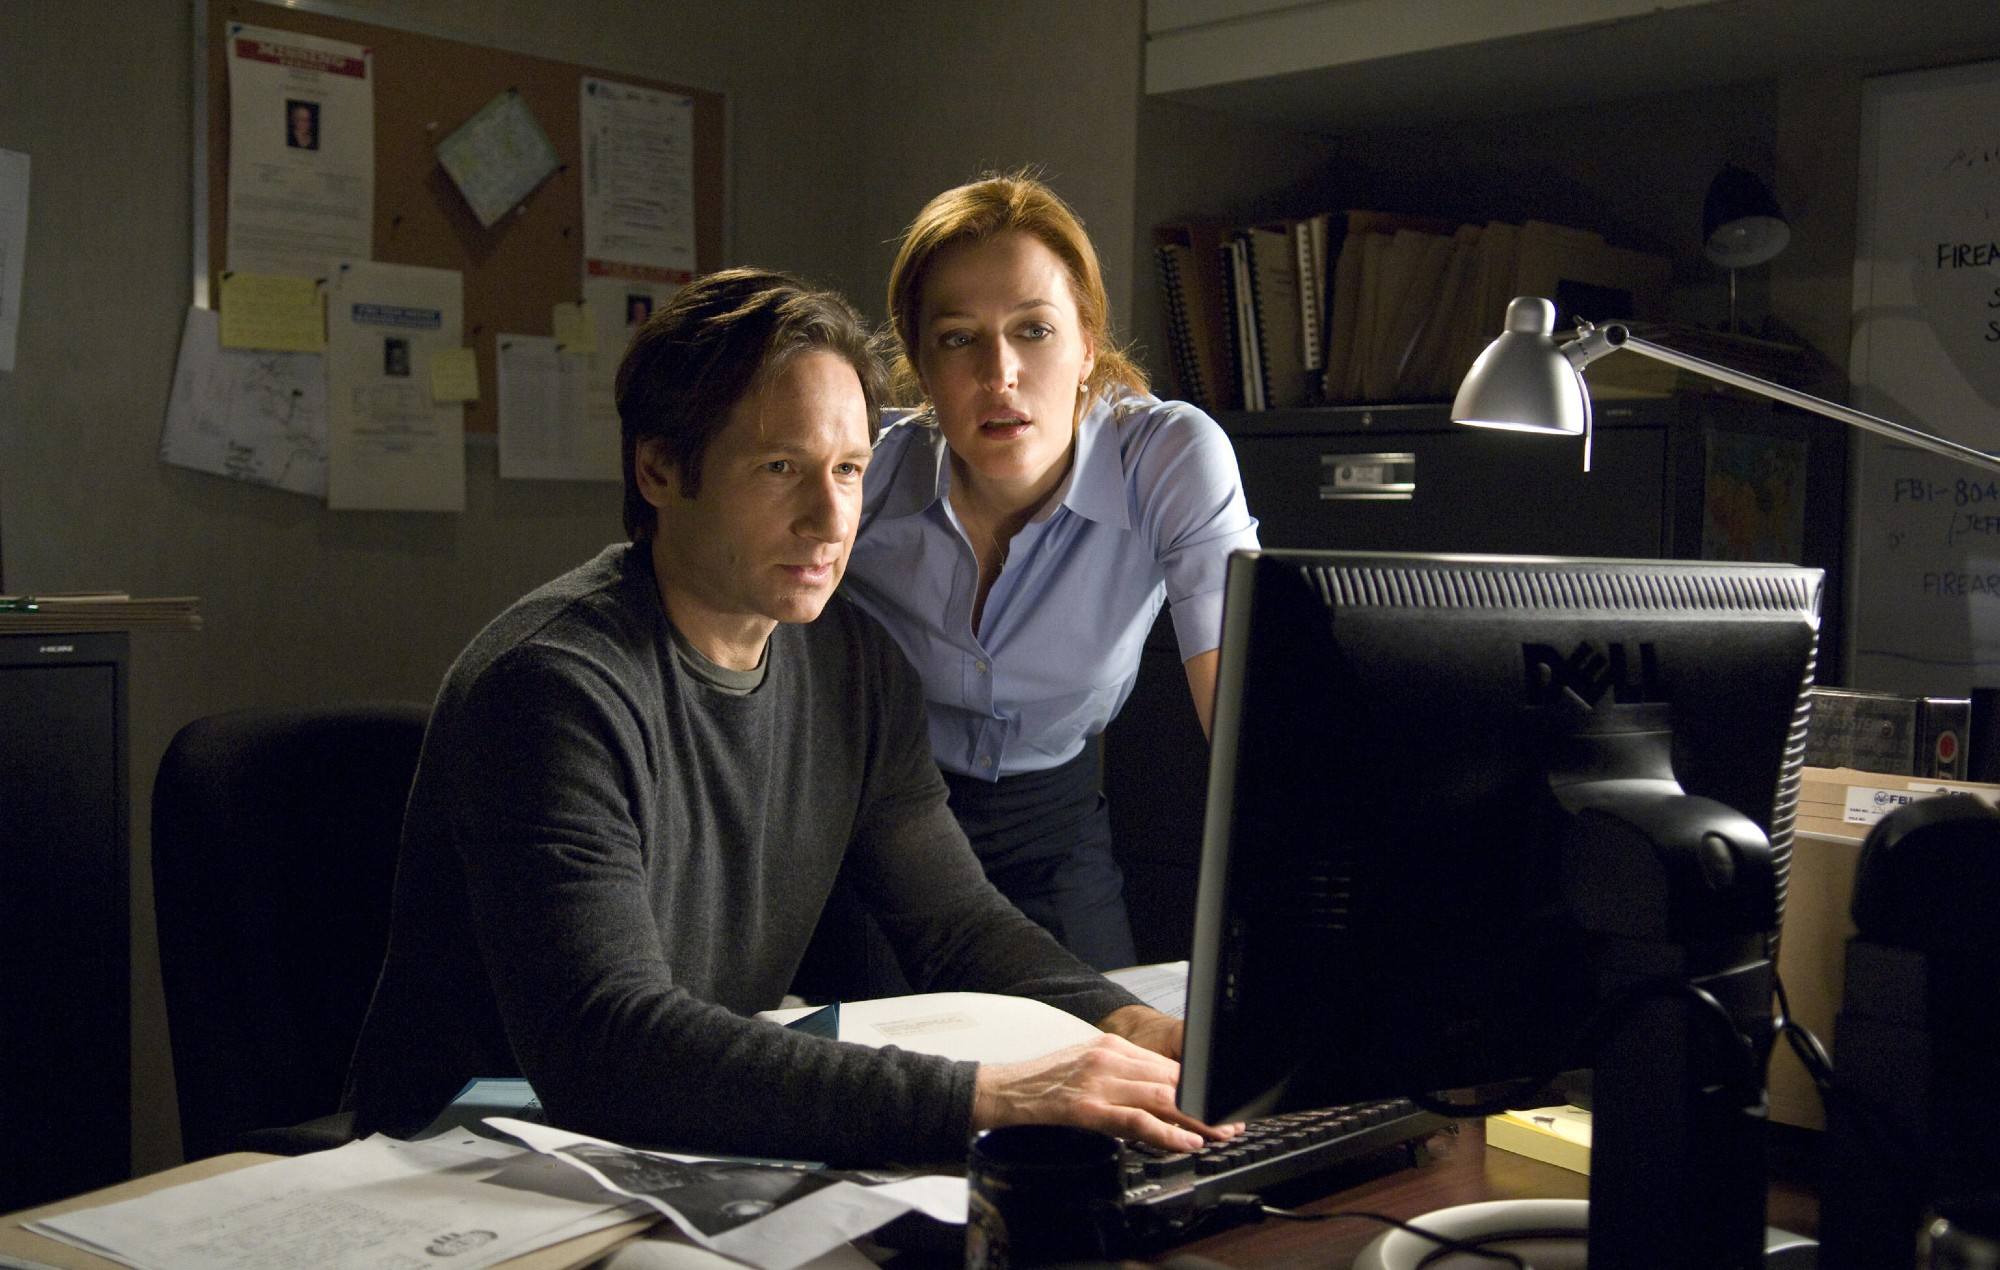 'The X-Files' David Duchovny and Gillian Anderson